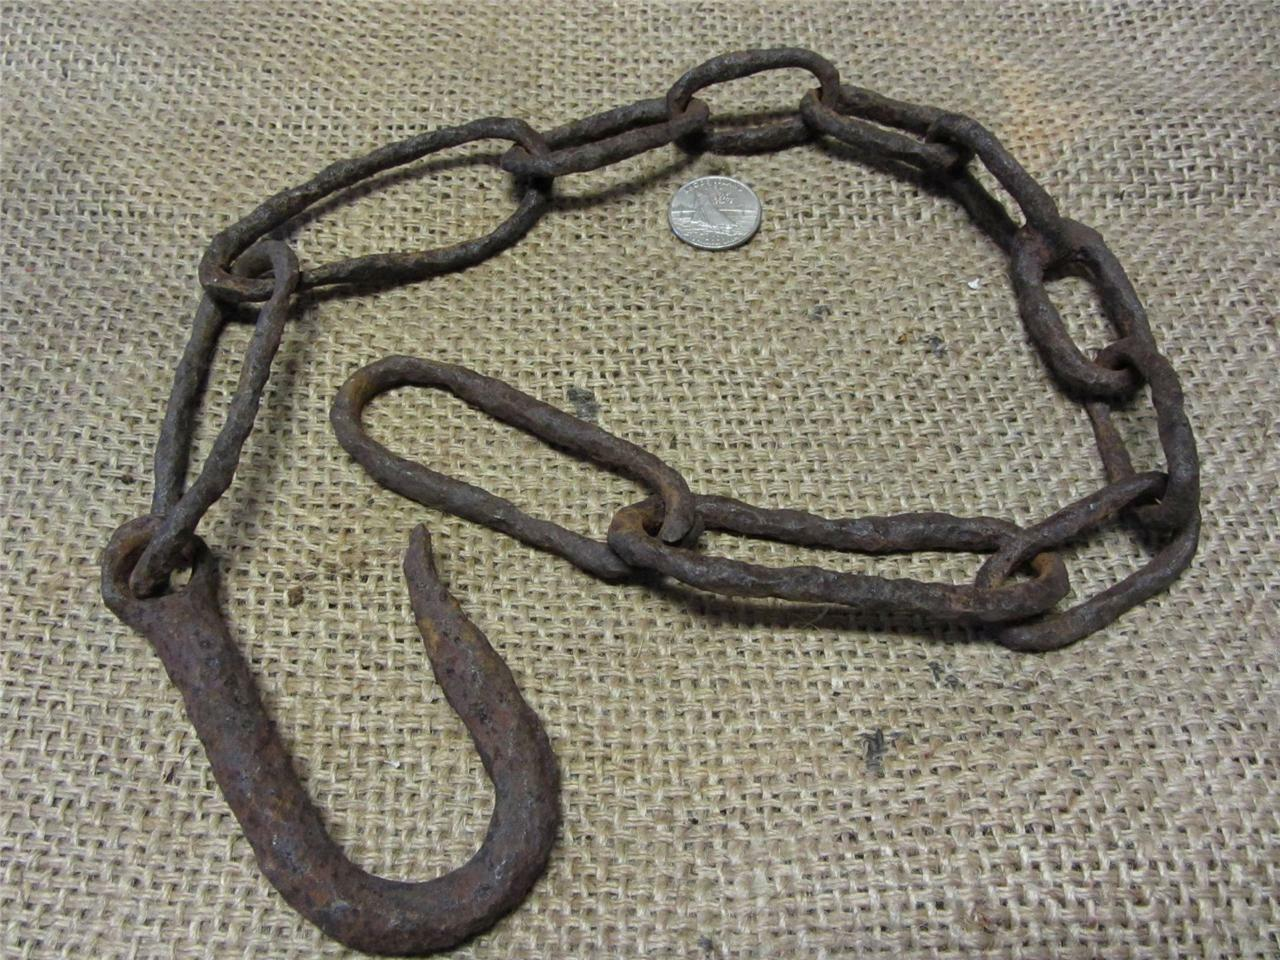 RARE Vintage Hand Forged Chain w Large Links > Antique Farm Old Ship 8549